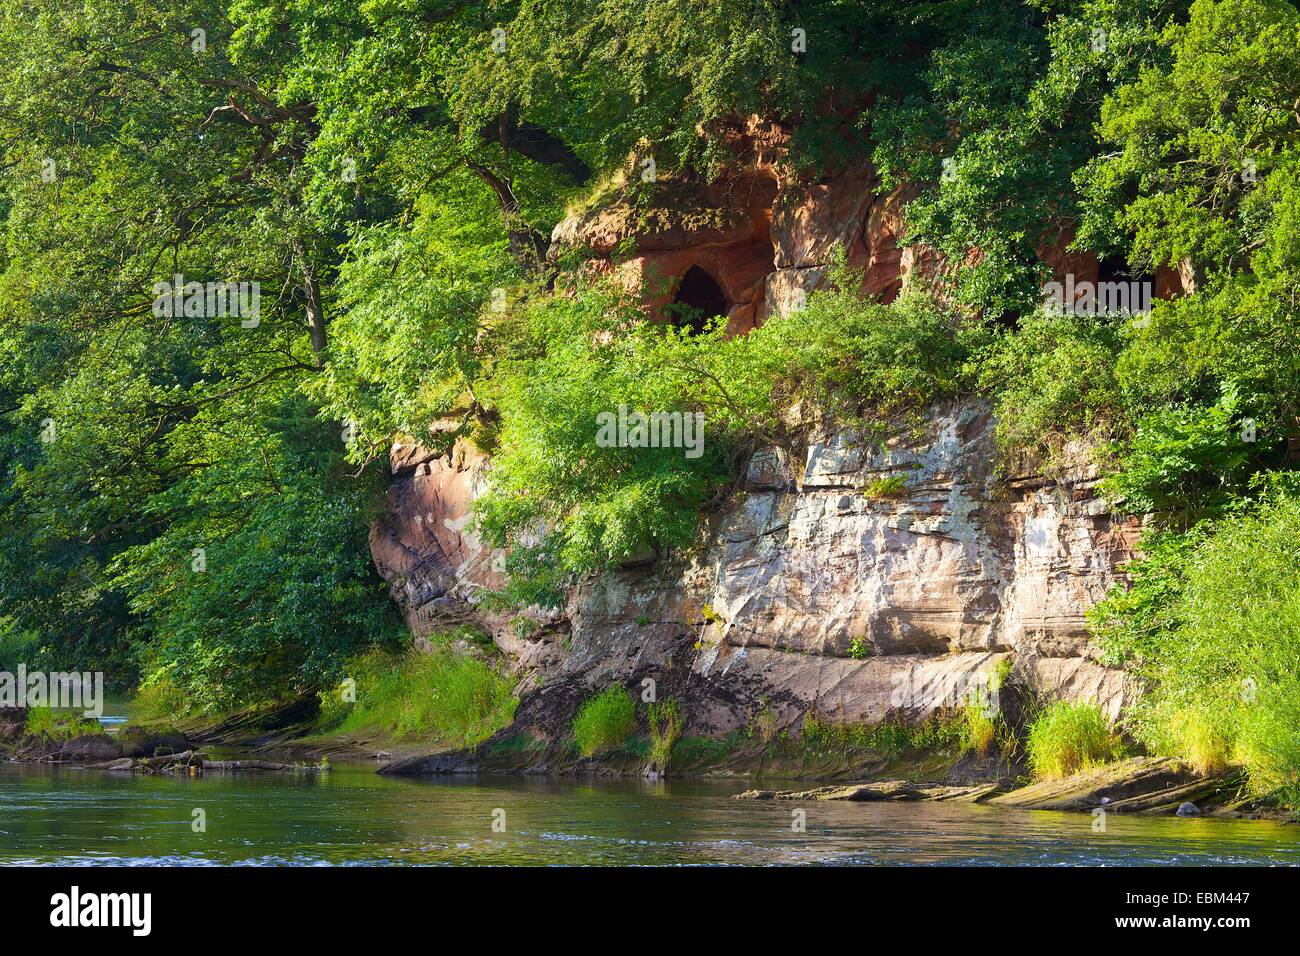 Lacy's Caves. Eden Lacy, Eden Valley, Cumbria, England, UK. - Stock Image